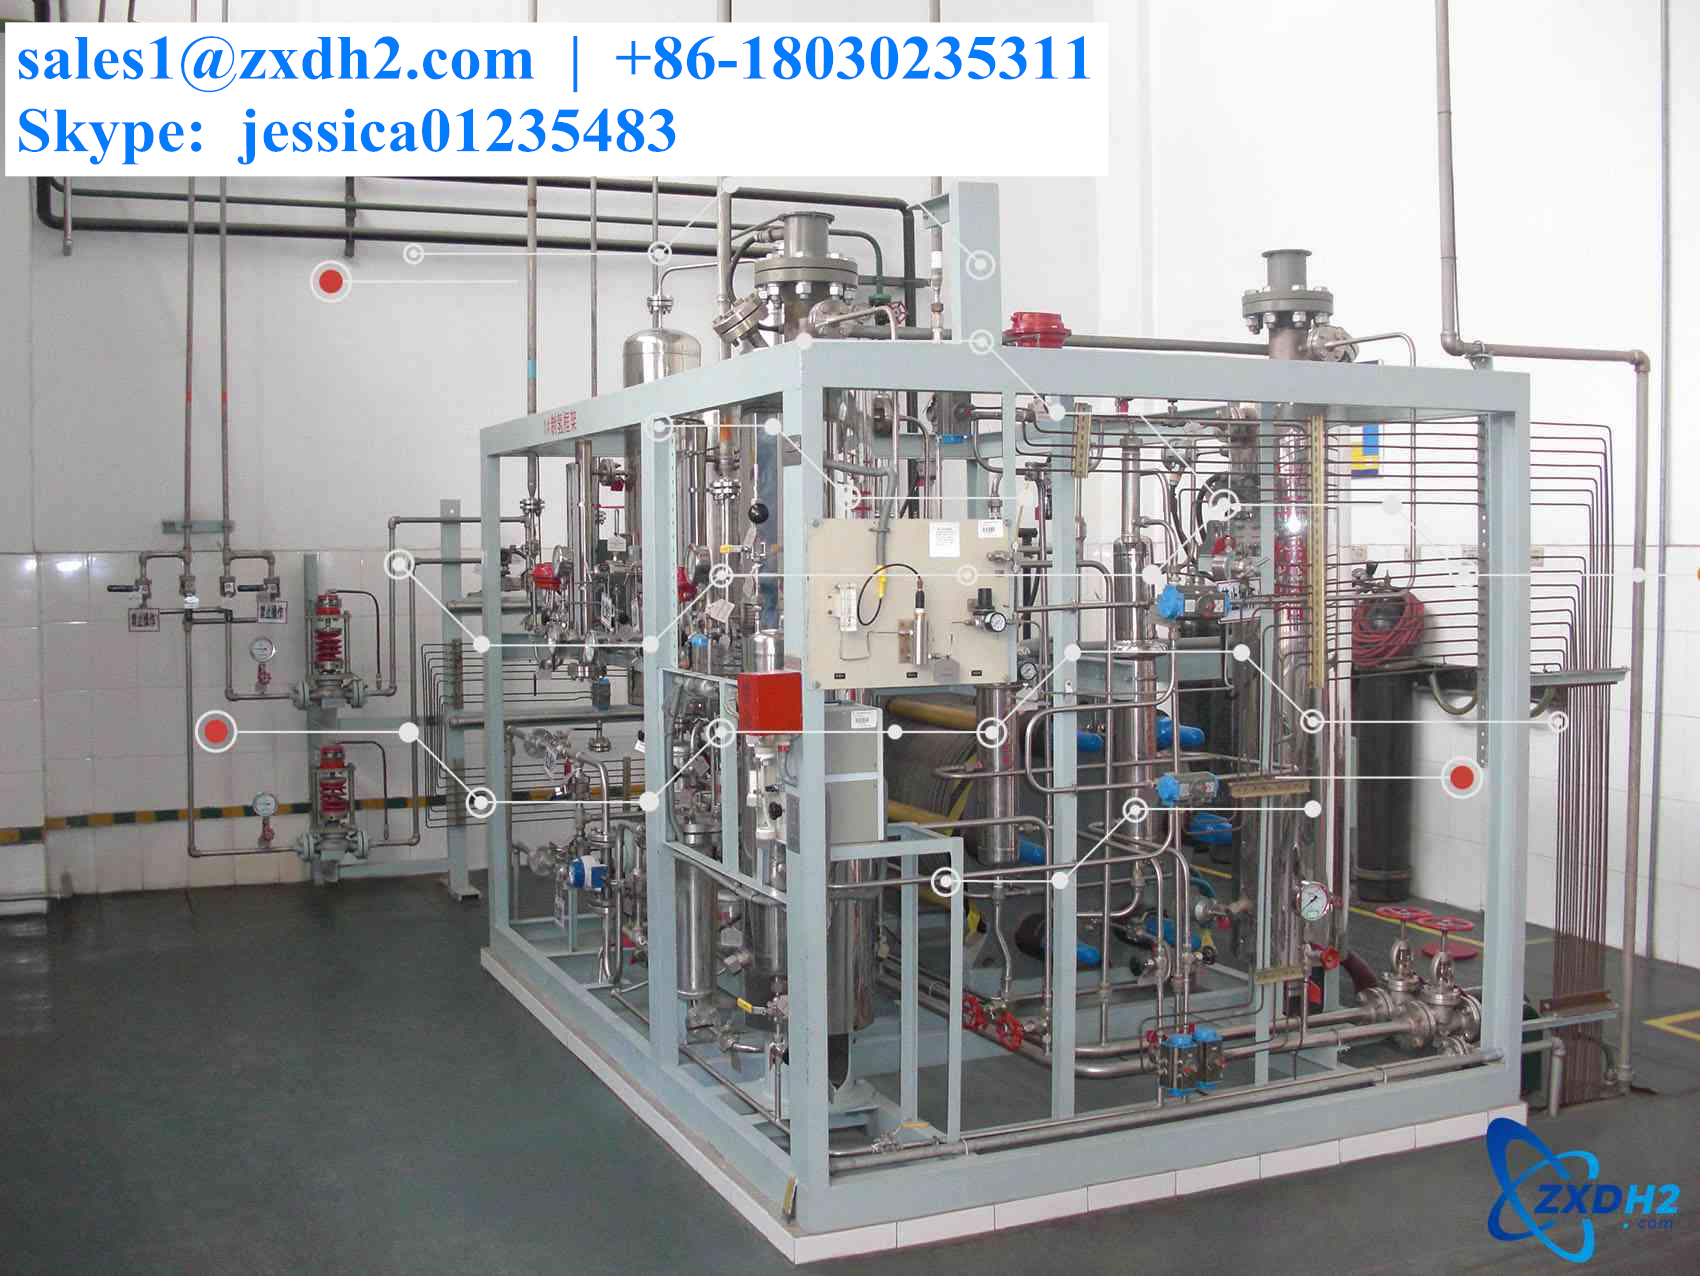 Electrolyzer of 60 m³ water electrolysis hydrogen production equipment